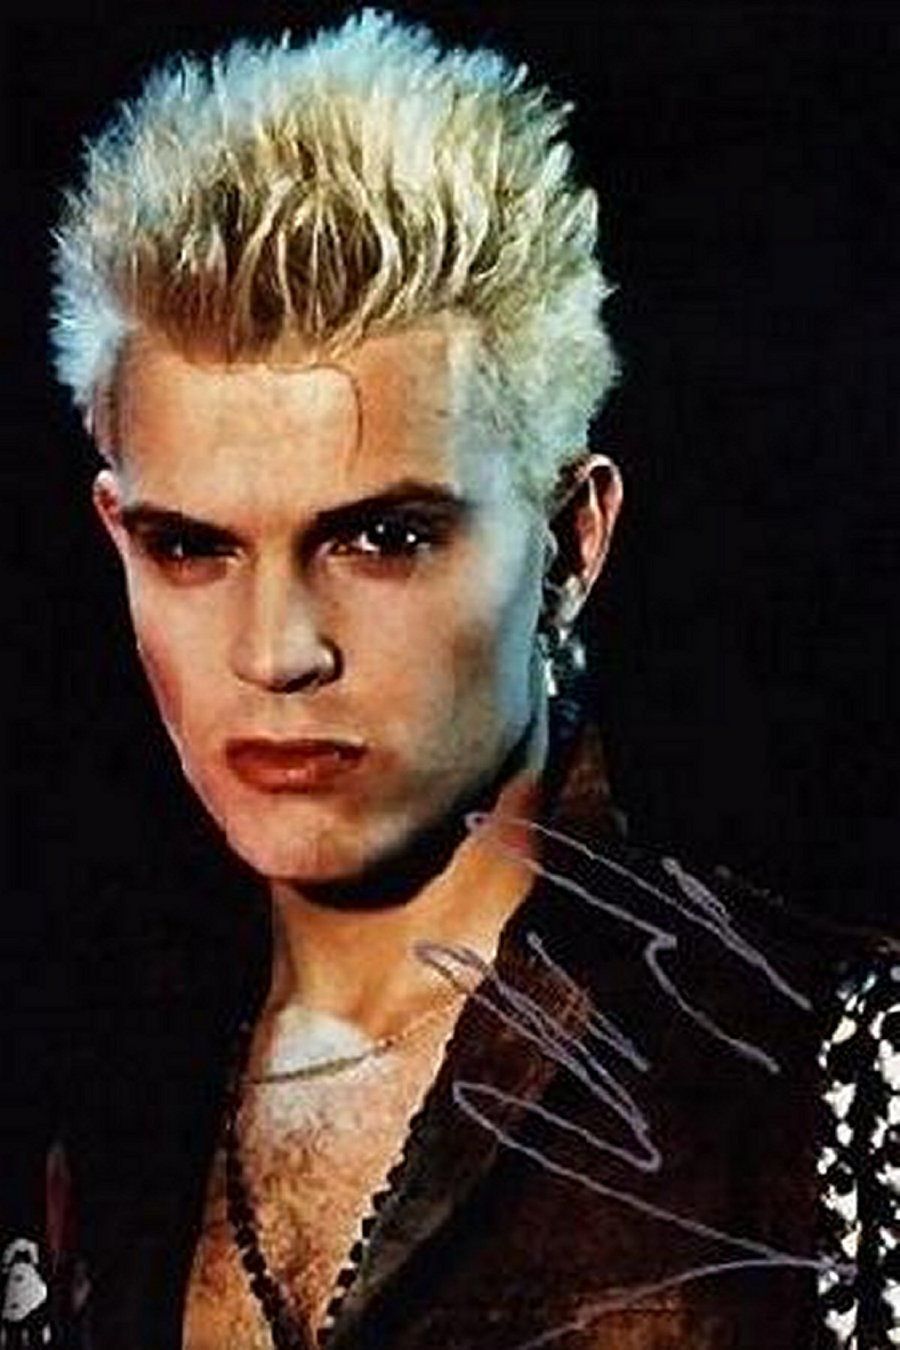 Billy idol rock and roll only pinterest billy idol